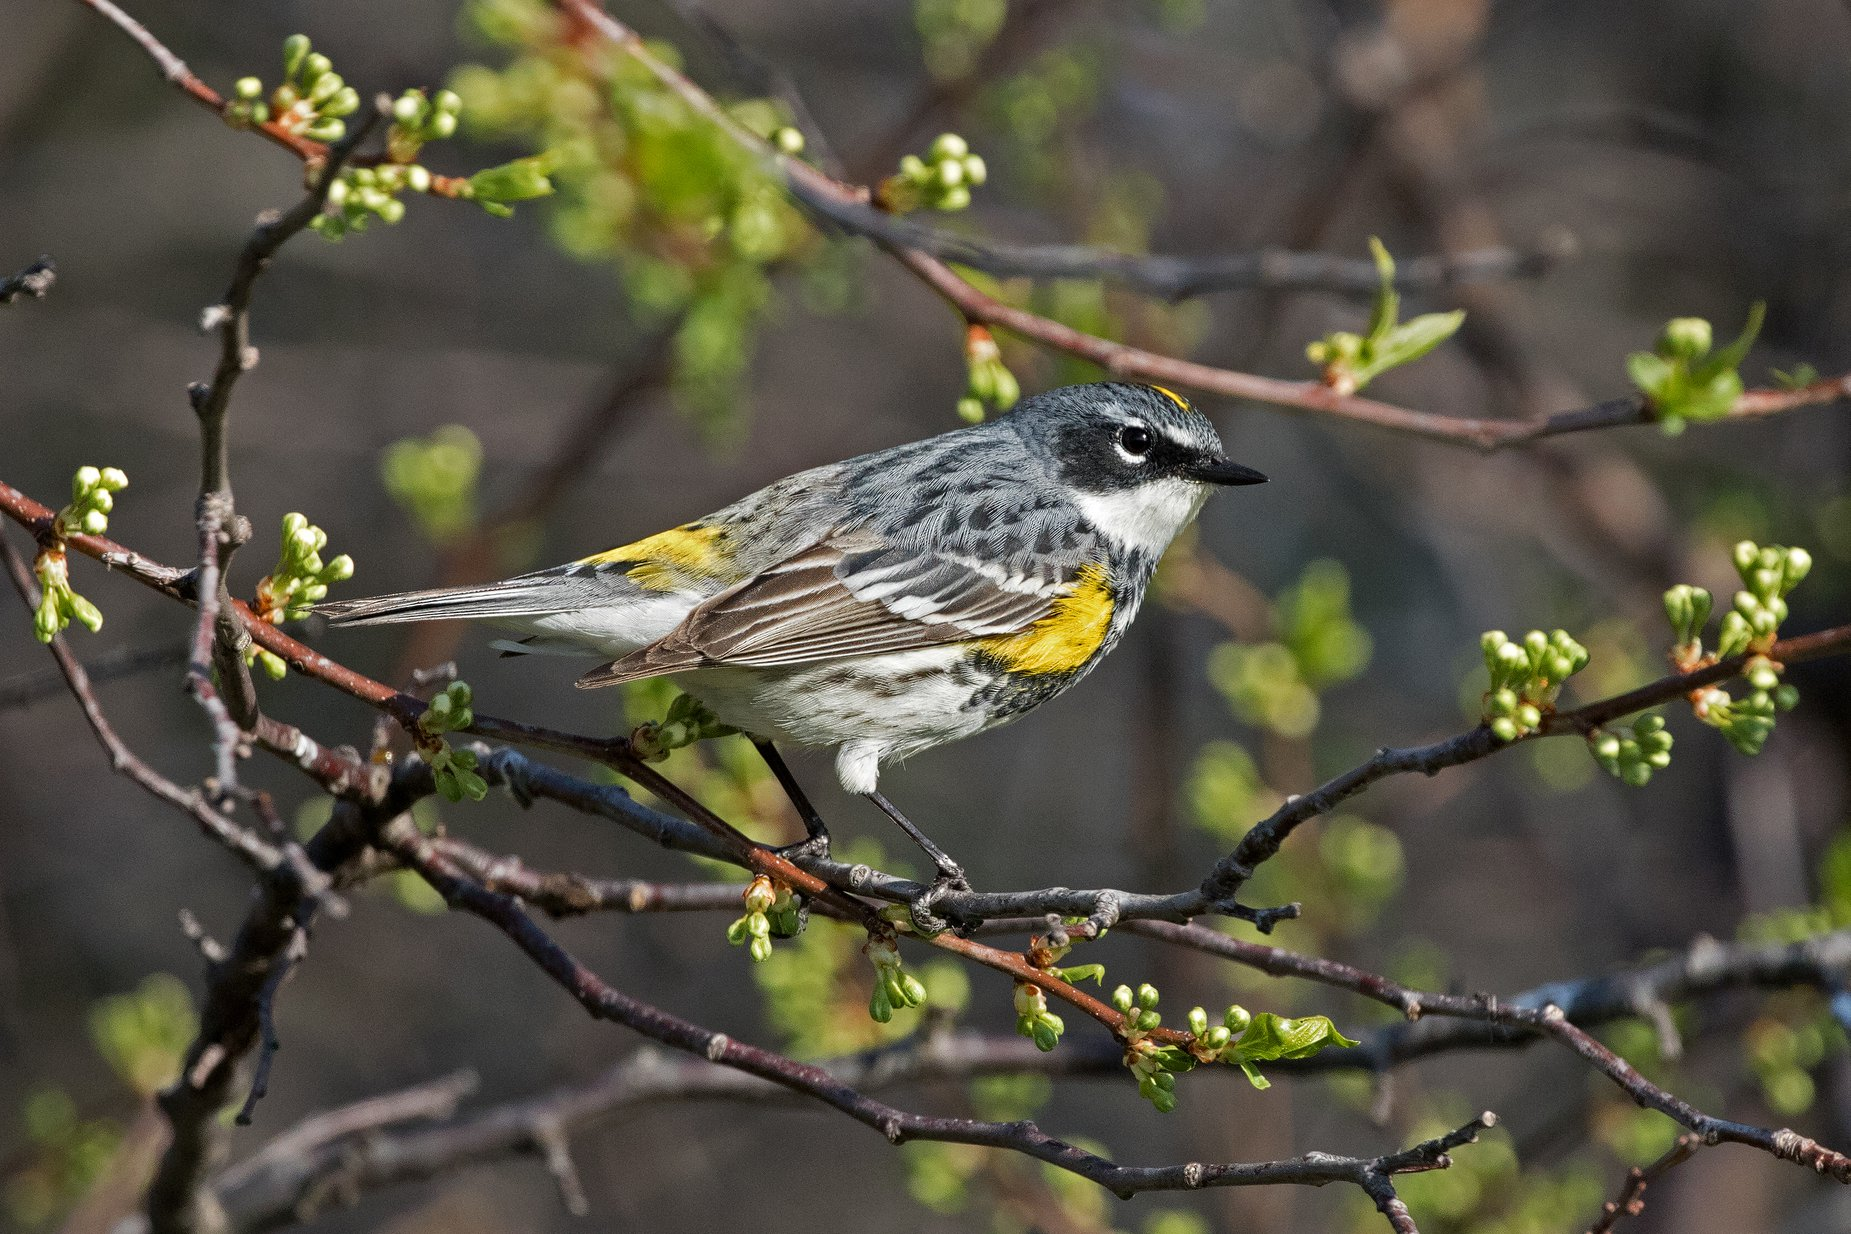 Fourth Place Honorable Mention: Yellow-rumped Warbler. Photo by John Picken.